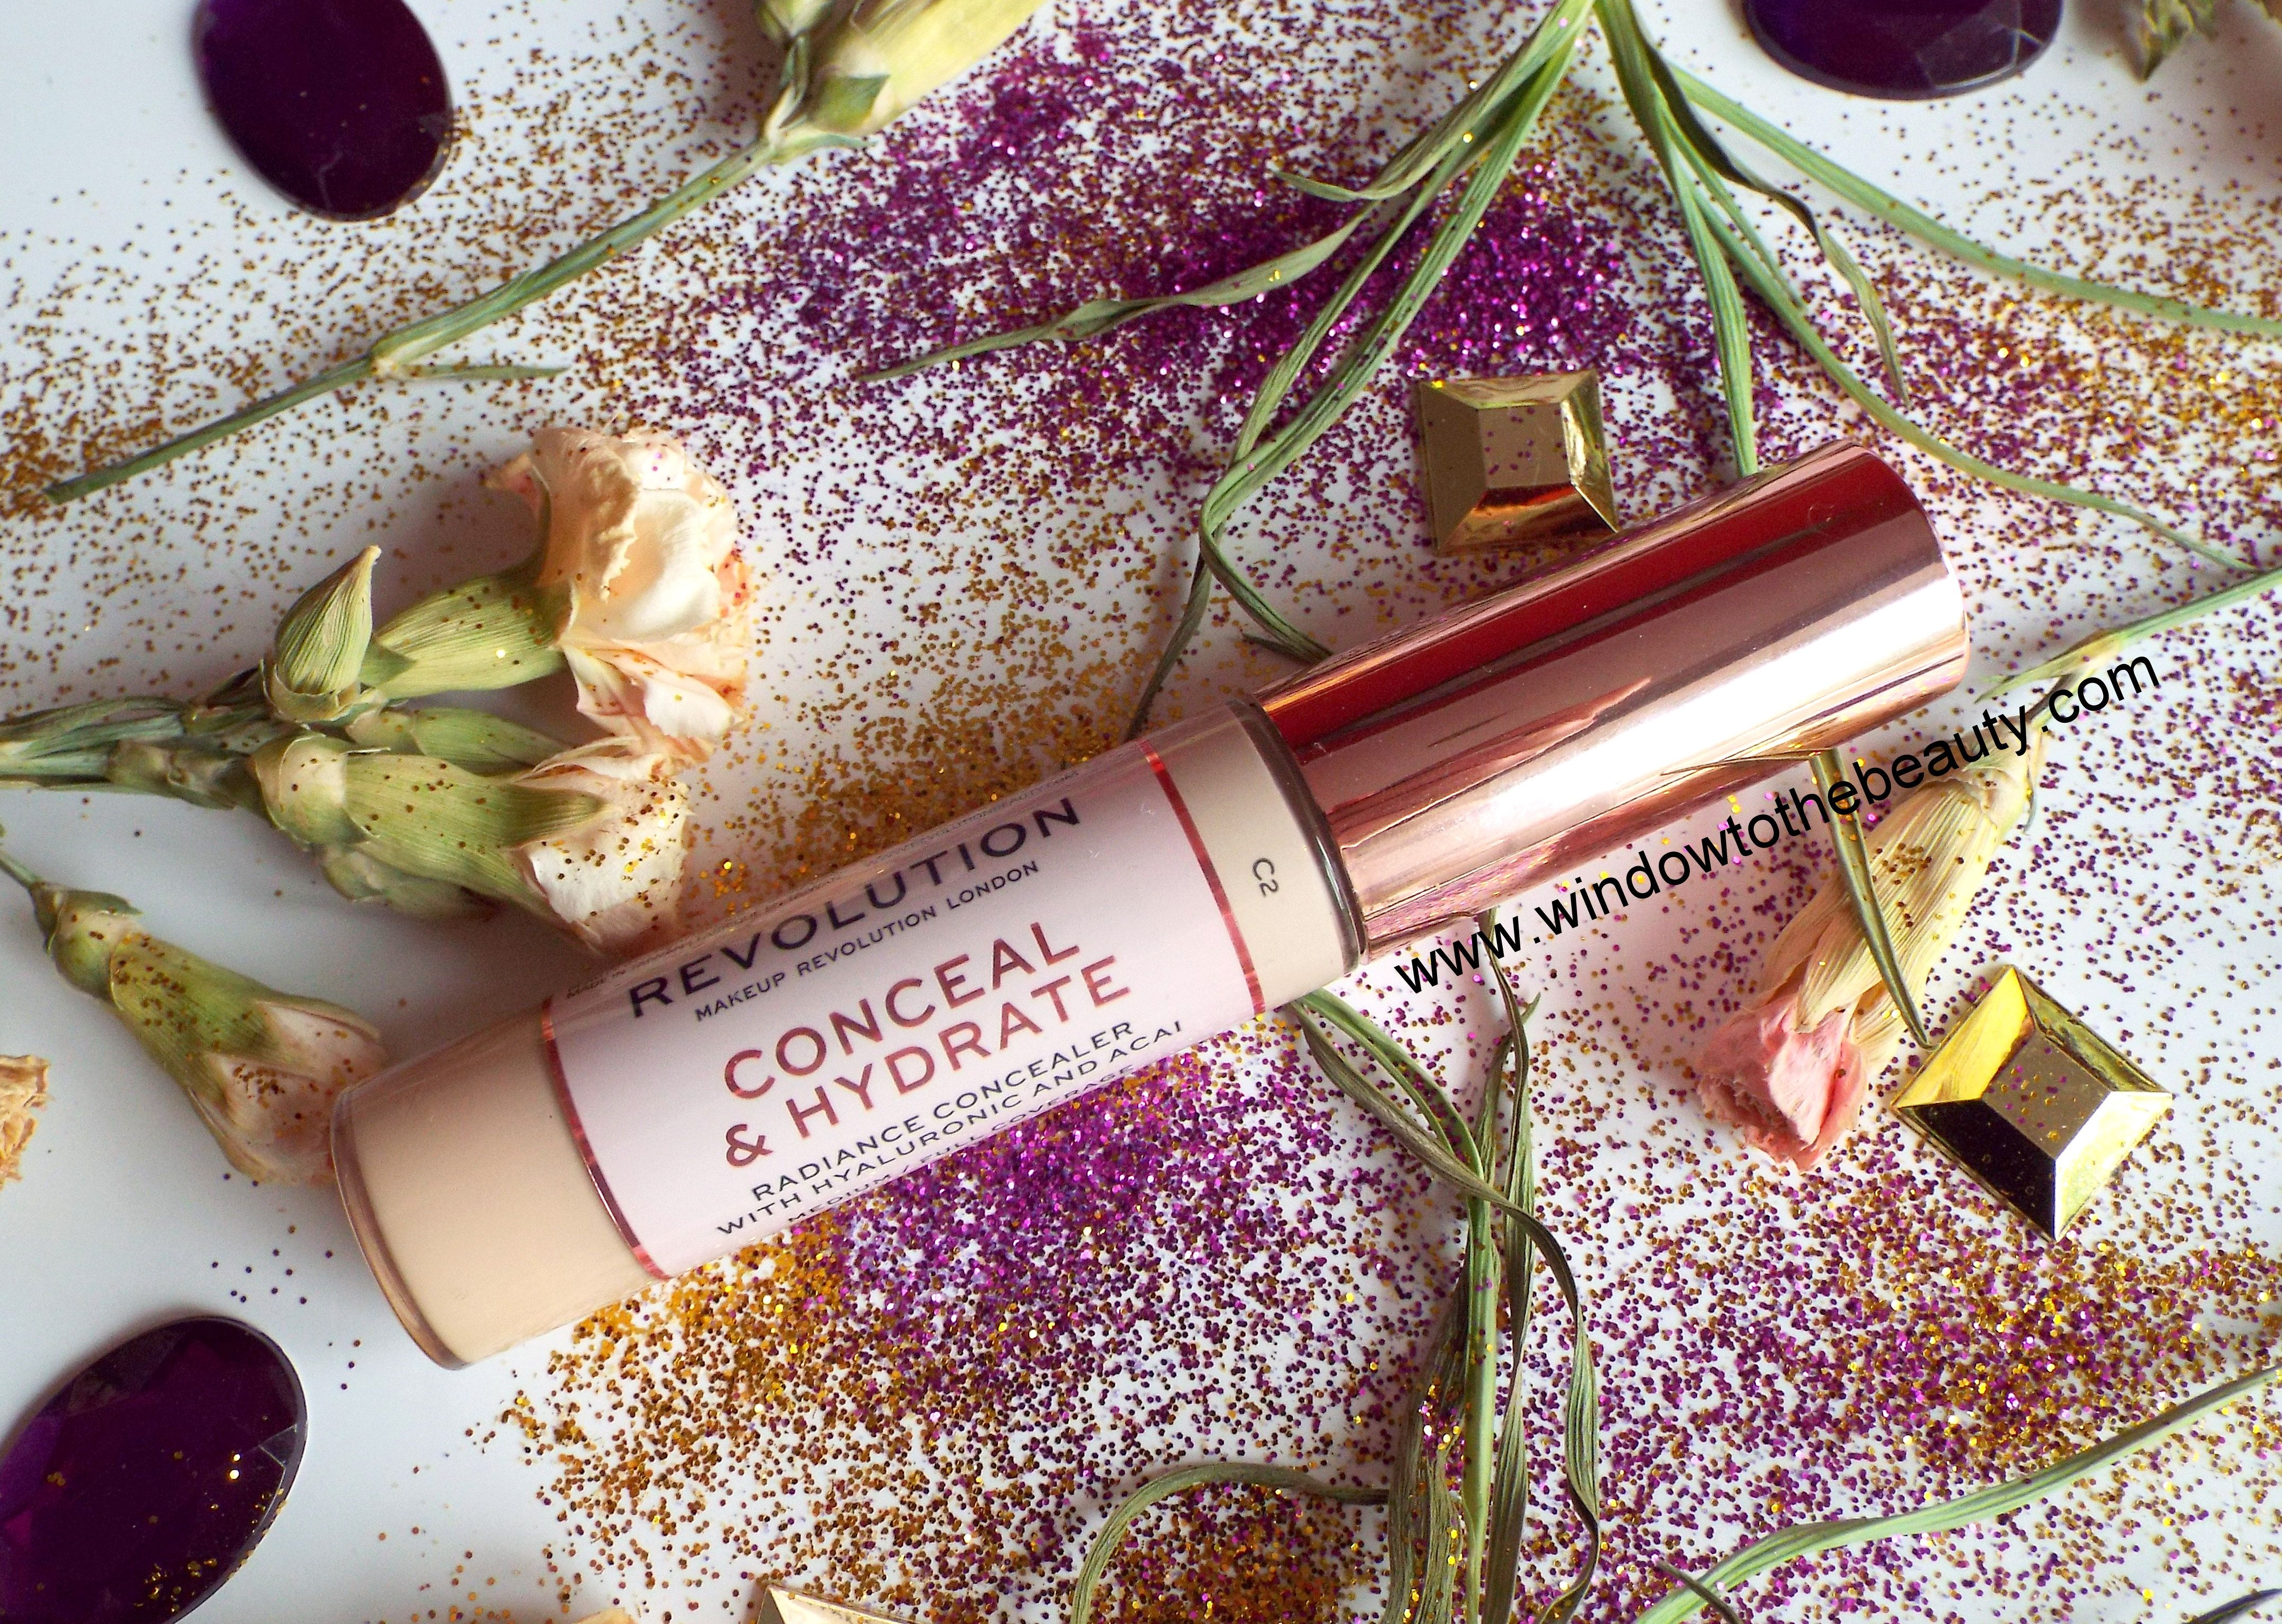 Revolution Conceal & Hydrate Concealer review and swatches